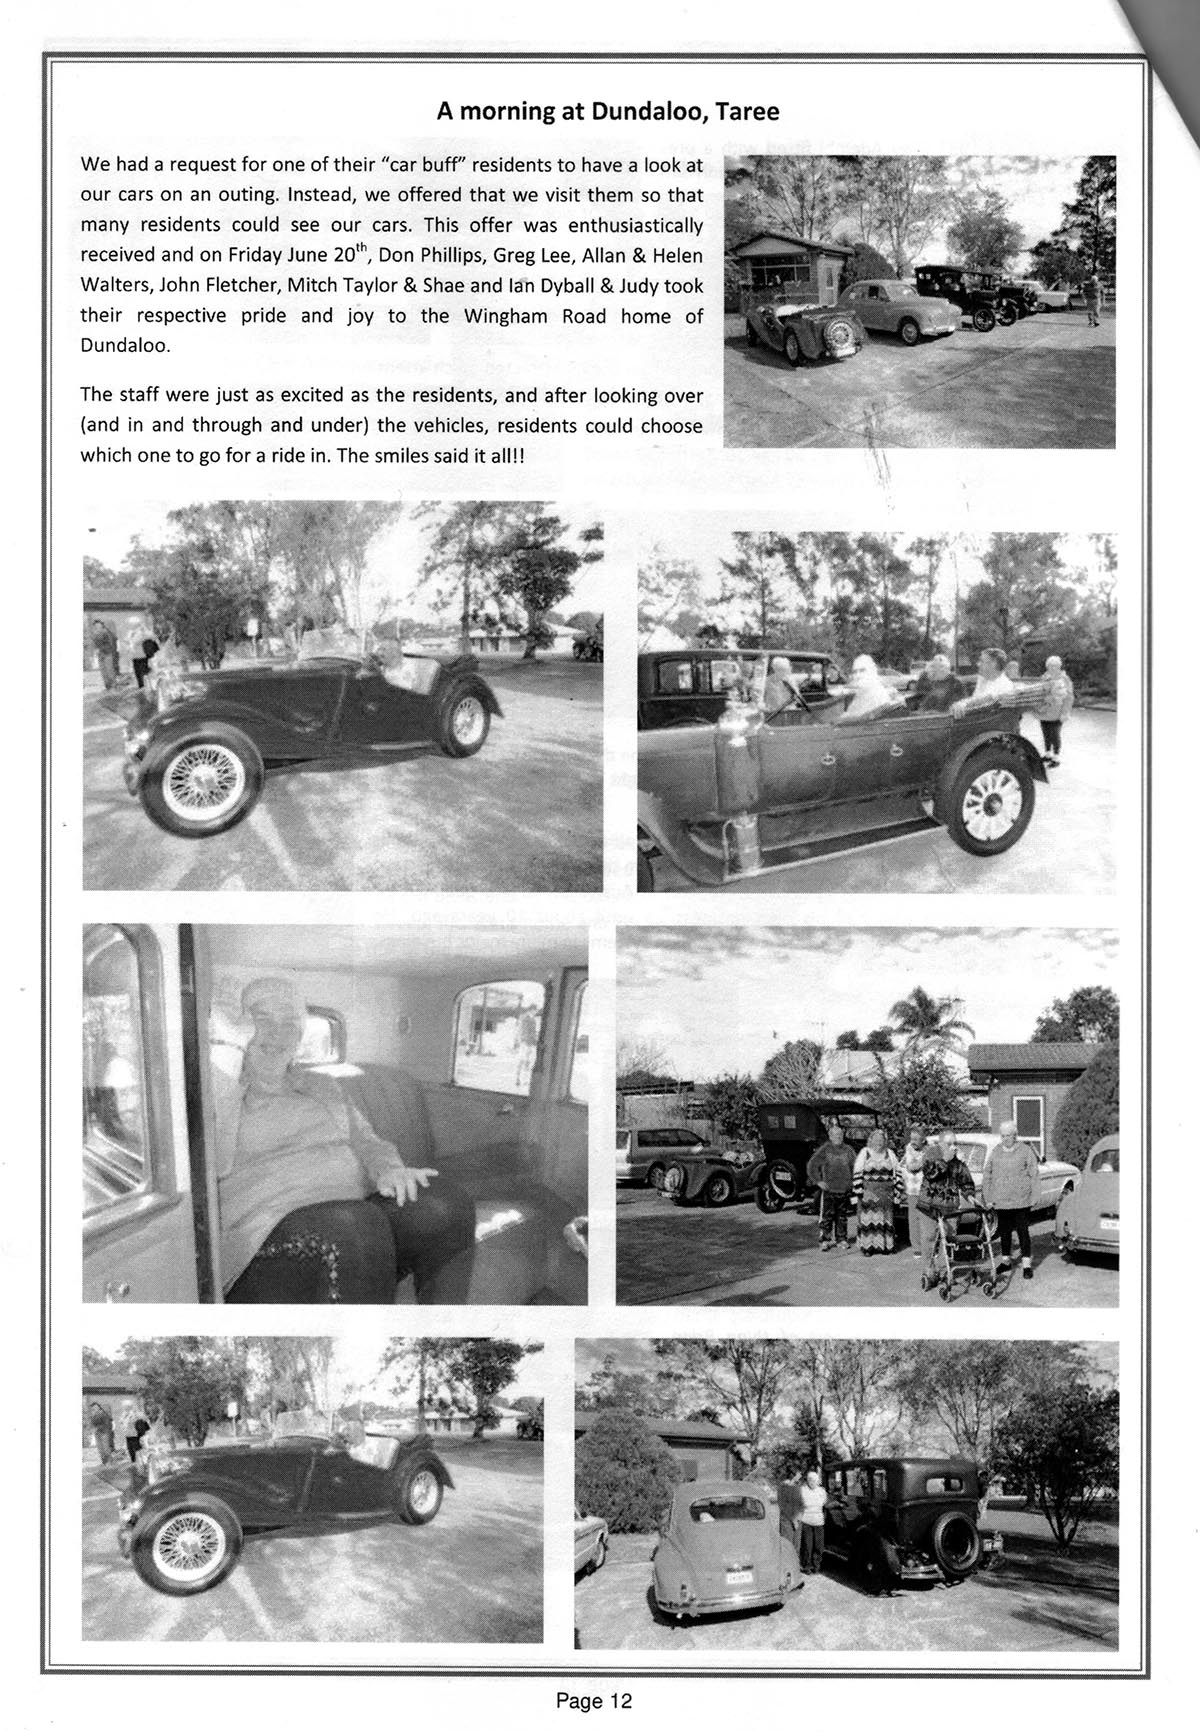 Taree Historic Motor Club